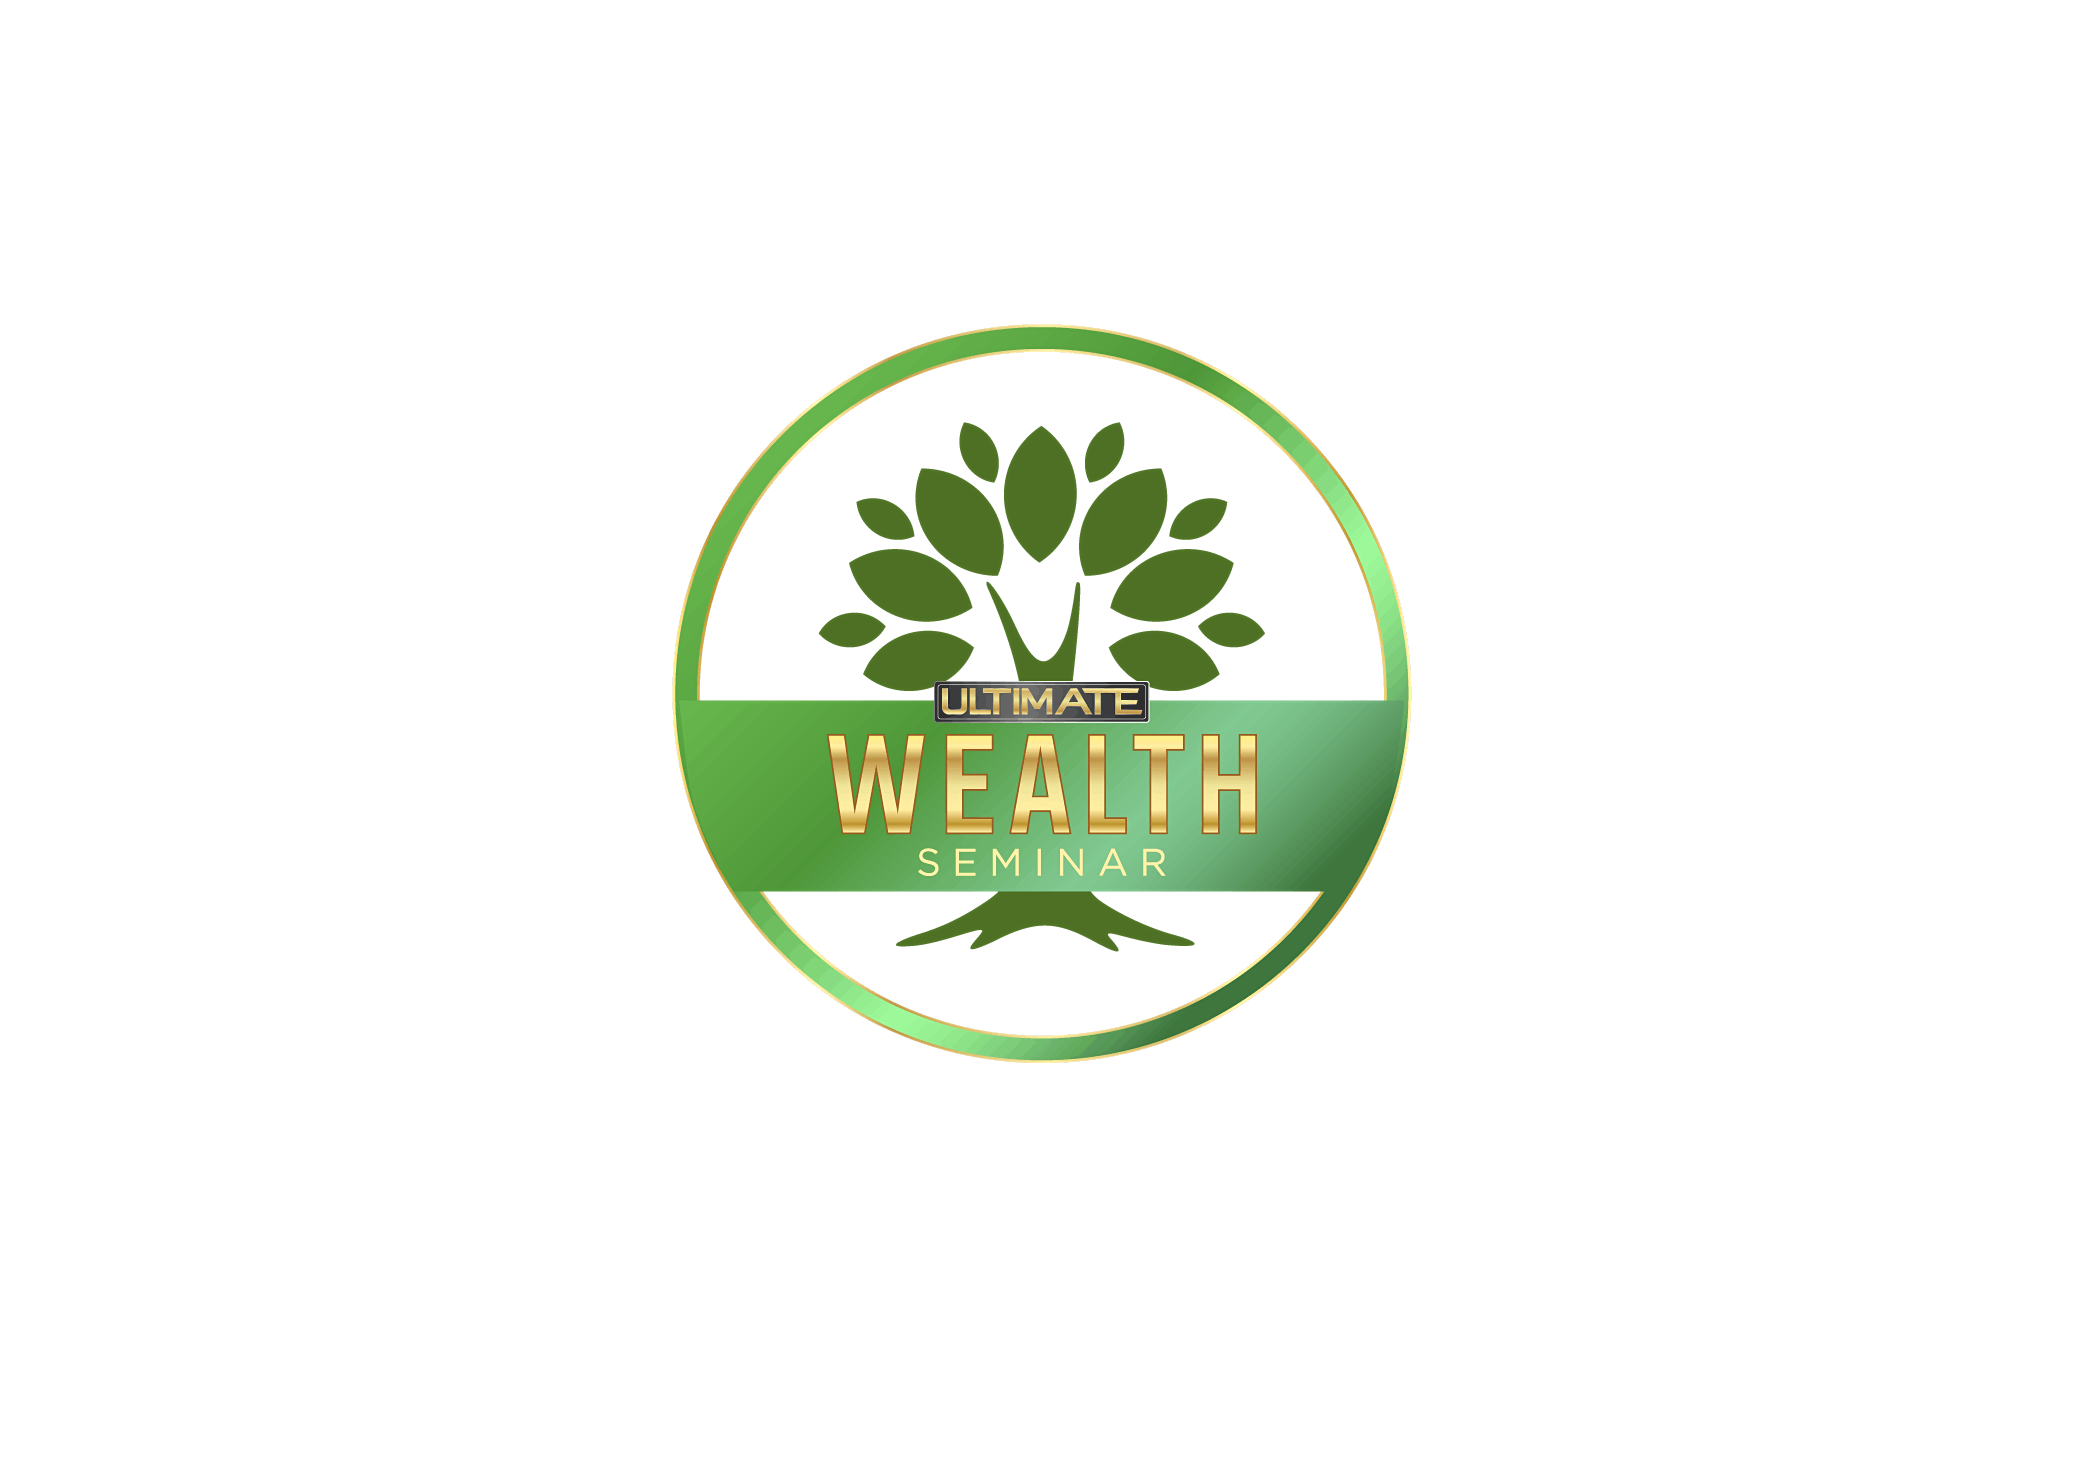 Ultimate Wealth Seminar